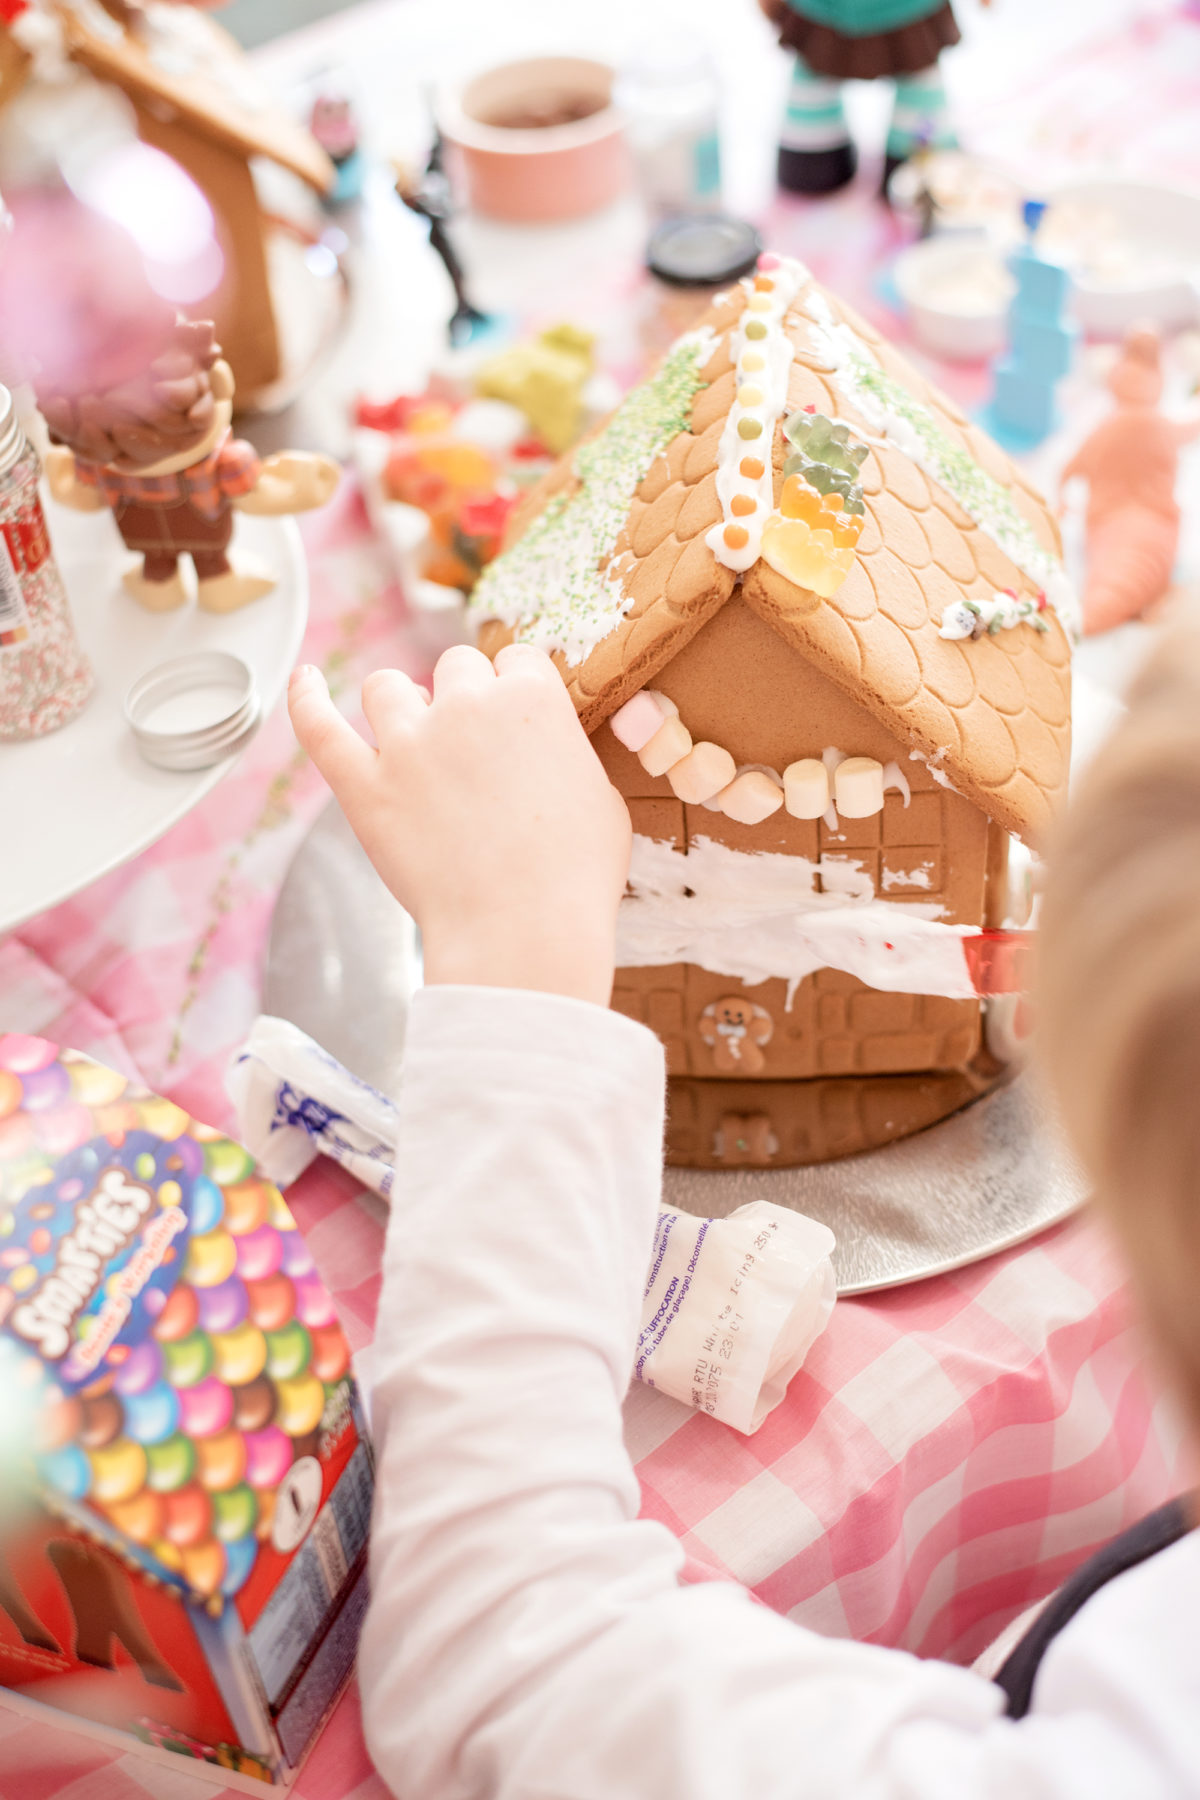 decorating the gingerbread house christmas